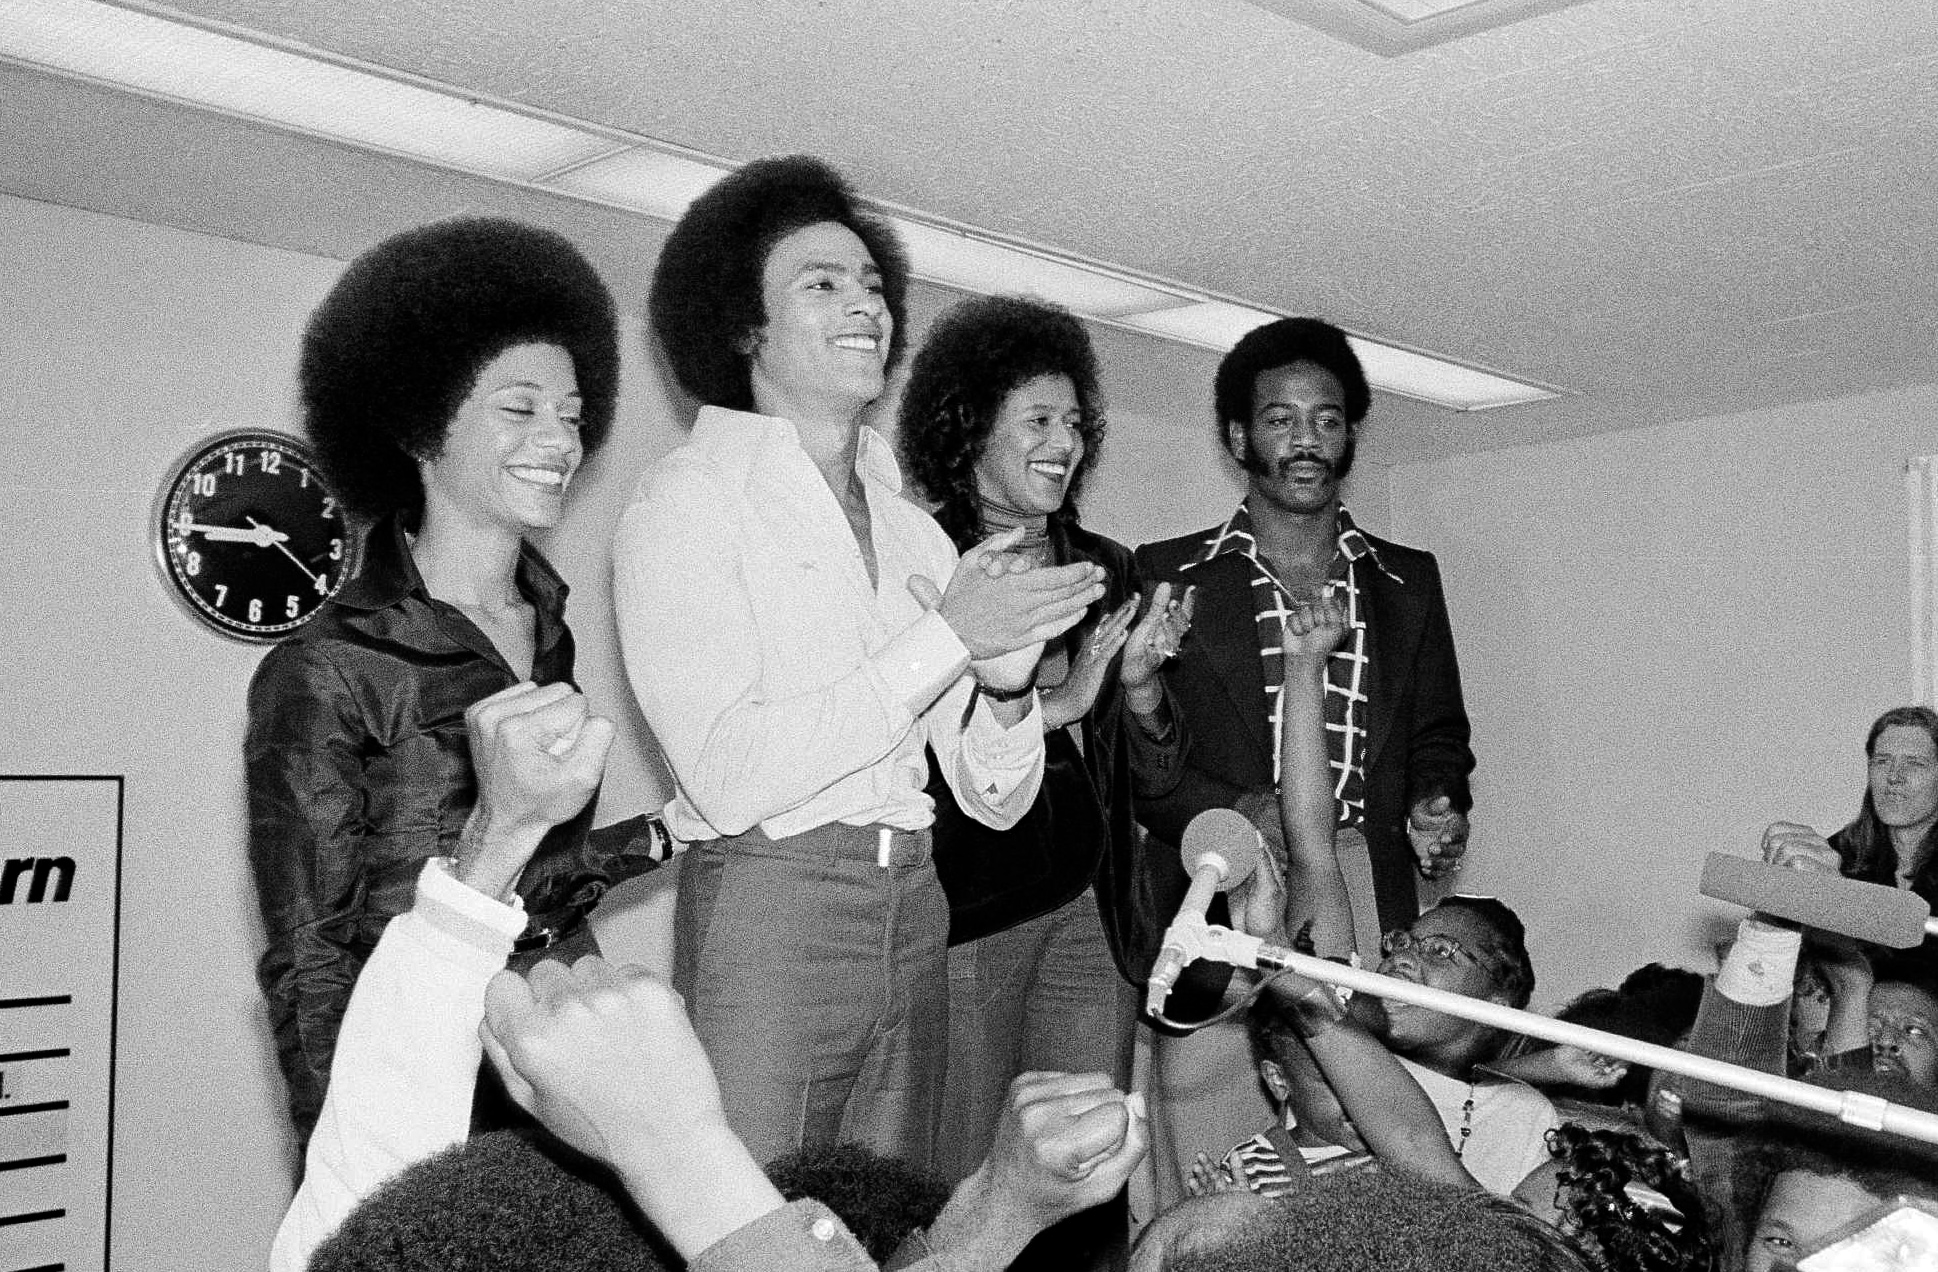 Elaine Brown And The Black Panther Party The First And Only Woman To Lead The Black Power Movement The Washington Post